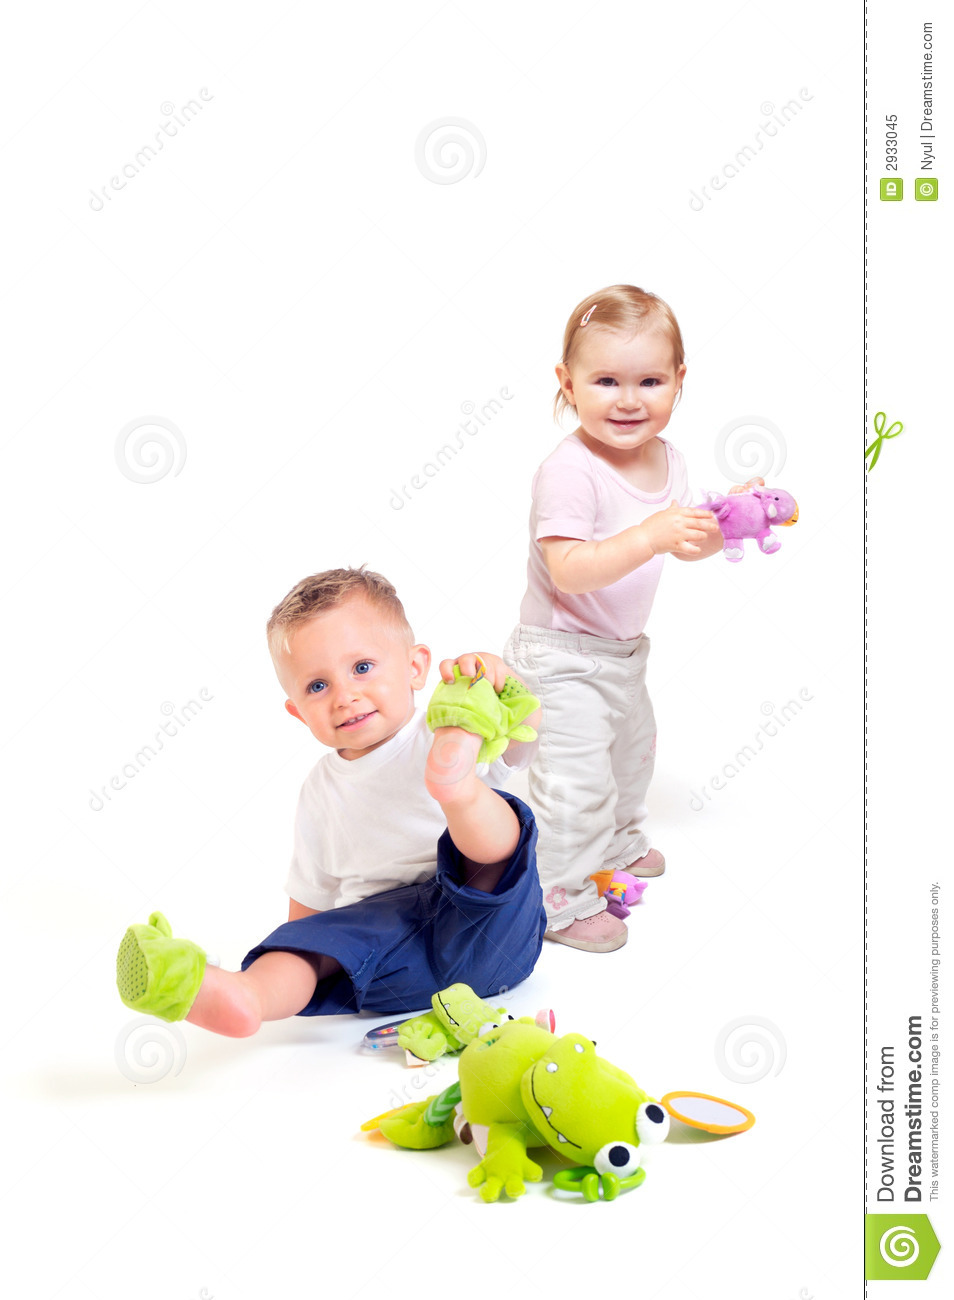 Play Toys Com : Babies play with toys royalty free stock photo image